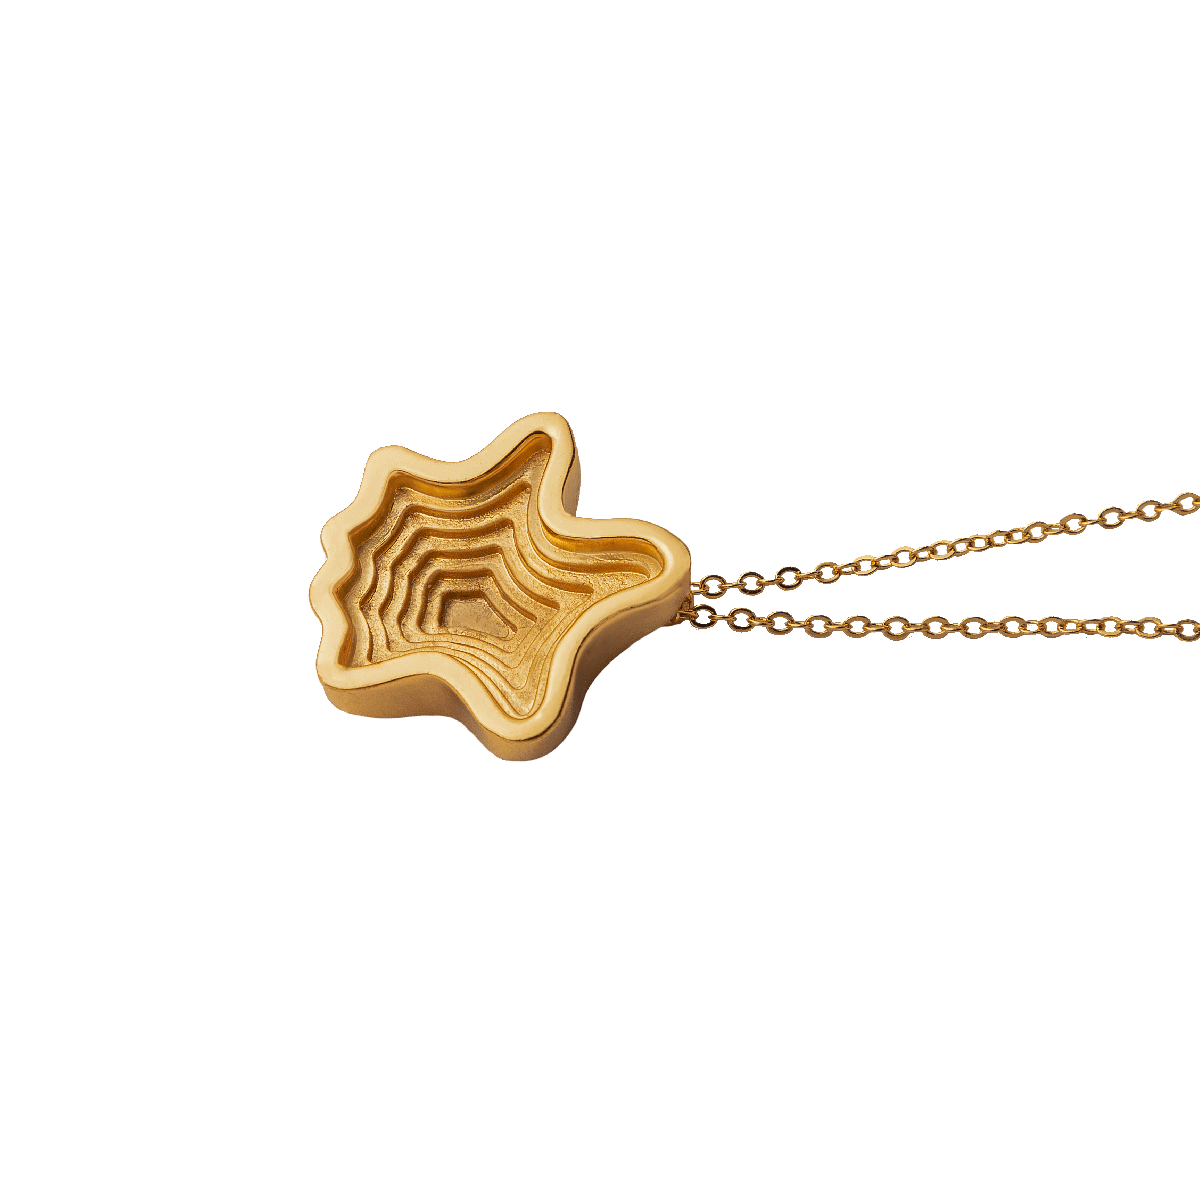 Hollow Layered Pendant